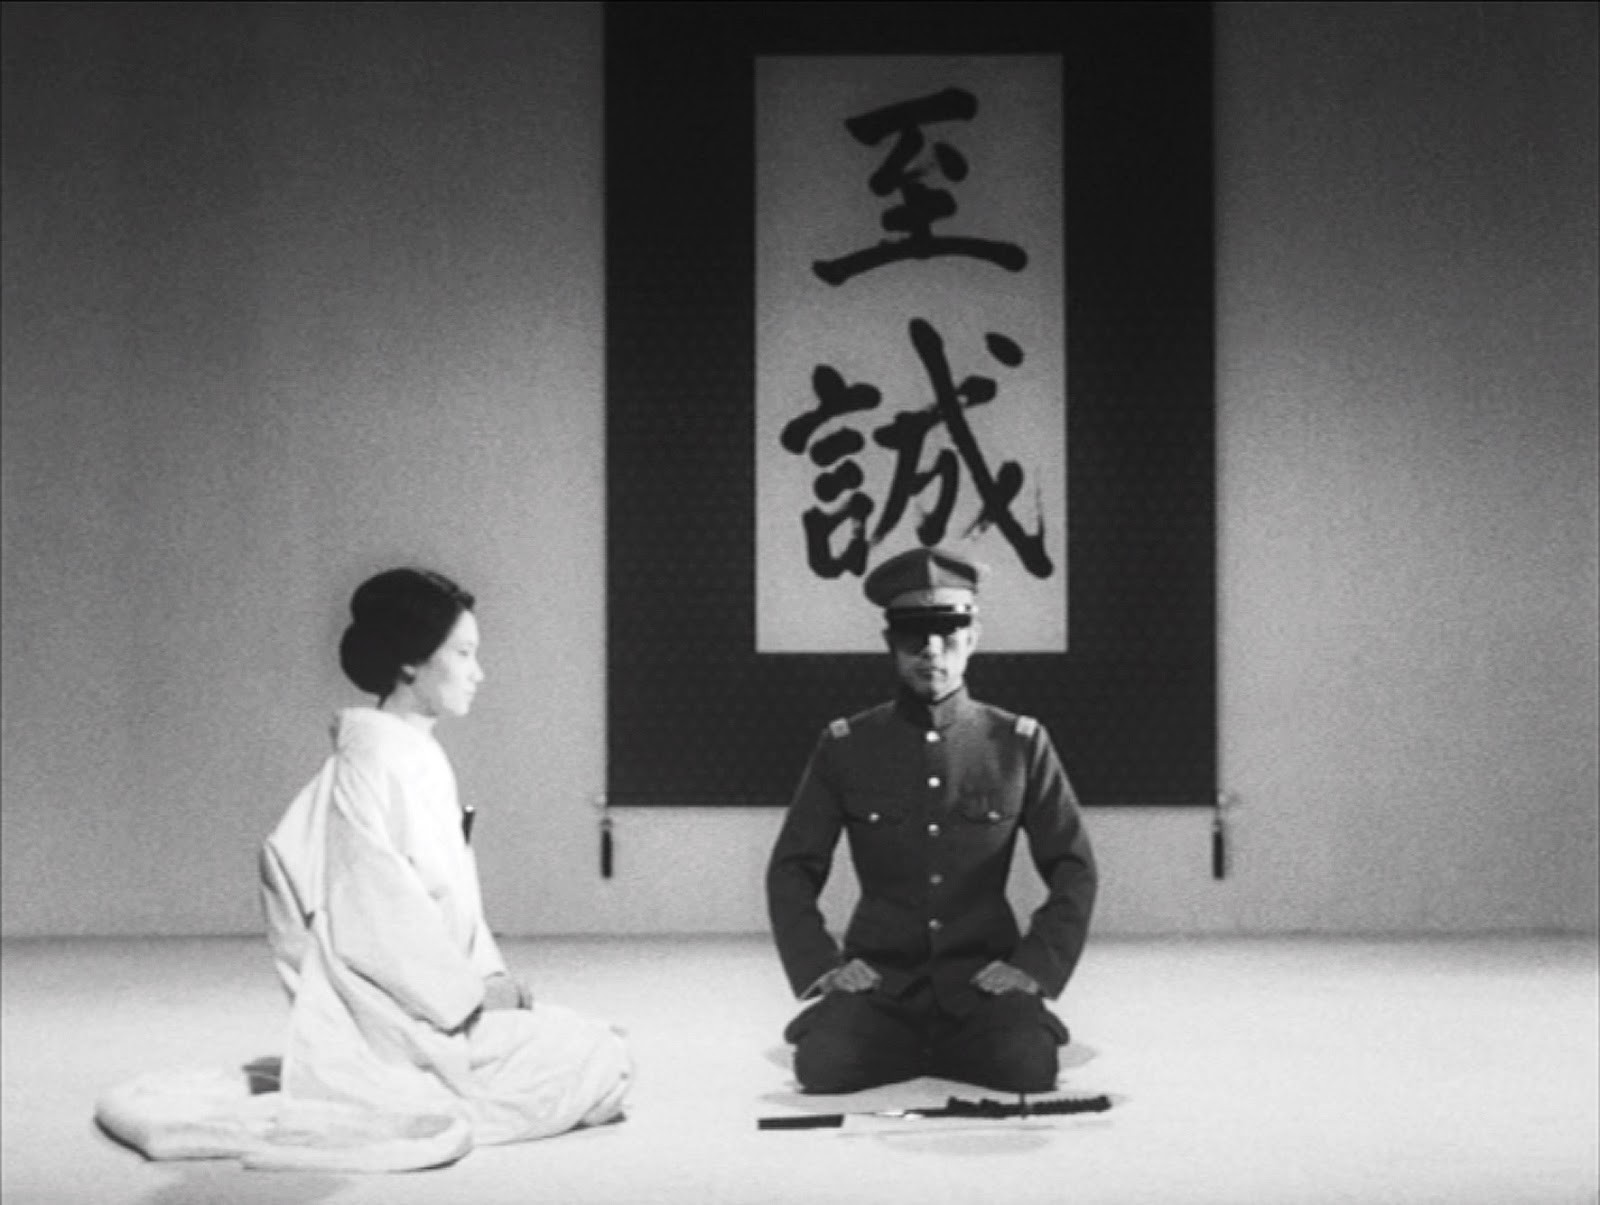 Mishima, in a military attire is leaning in front of a Japanese scripture. His wife is sitted to his right, in a white dress.